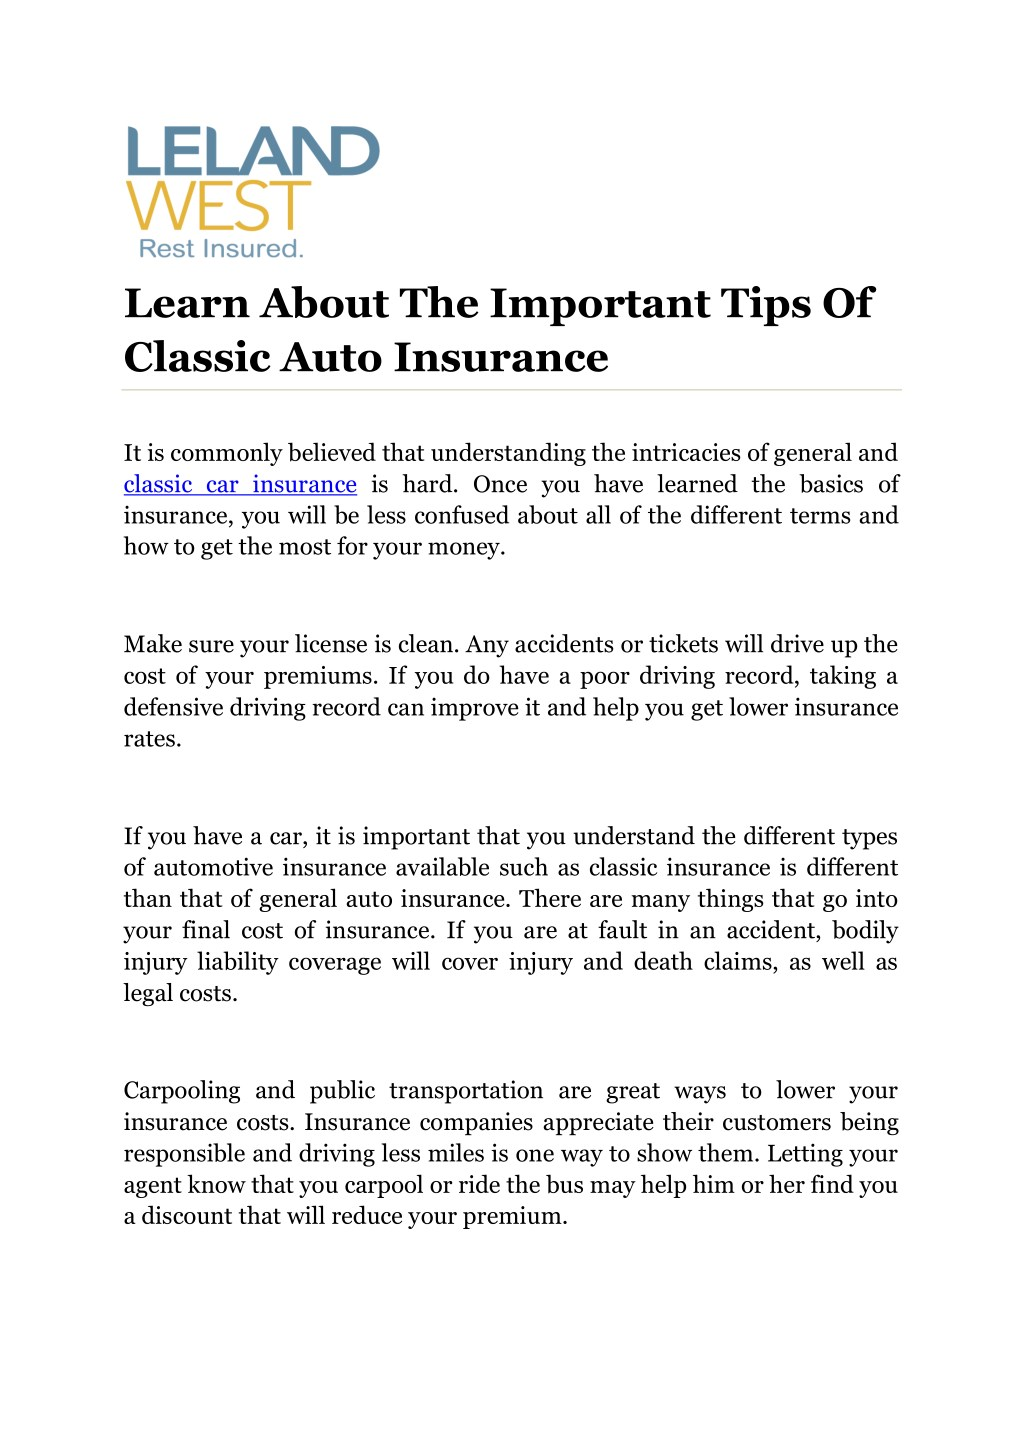 Ppt Learn About The Important Tips Of Classic Auto Insurance Powerpoint Presentation Id 7859707